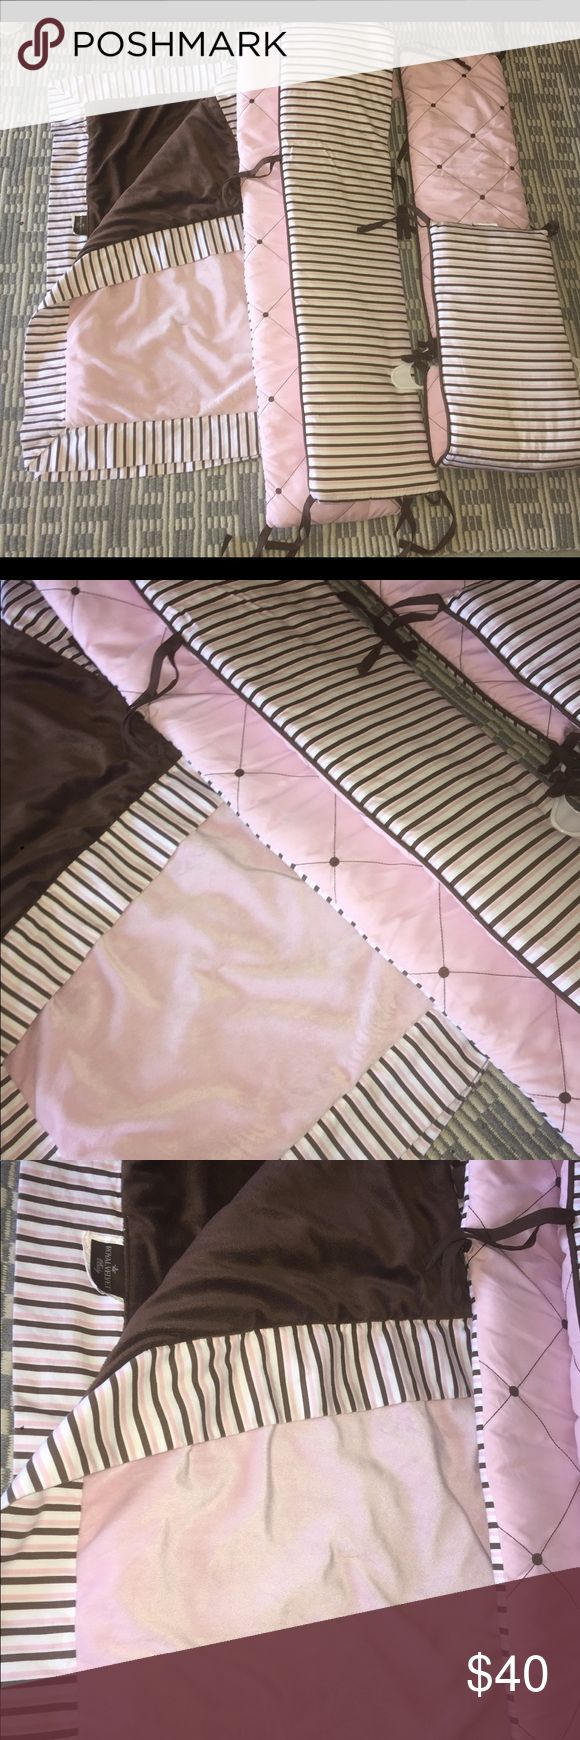 5 PIECE BABY GIRL CRIB BEDDING SET 4 toe string bumpers and matching faux fur comfrtor / blanket . Light pink chocolate and brown colored . Retail value over $175 velvet rose Accessories